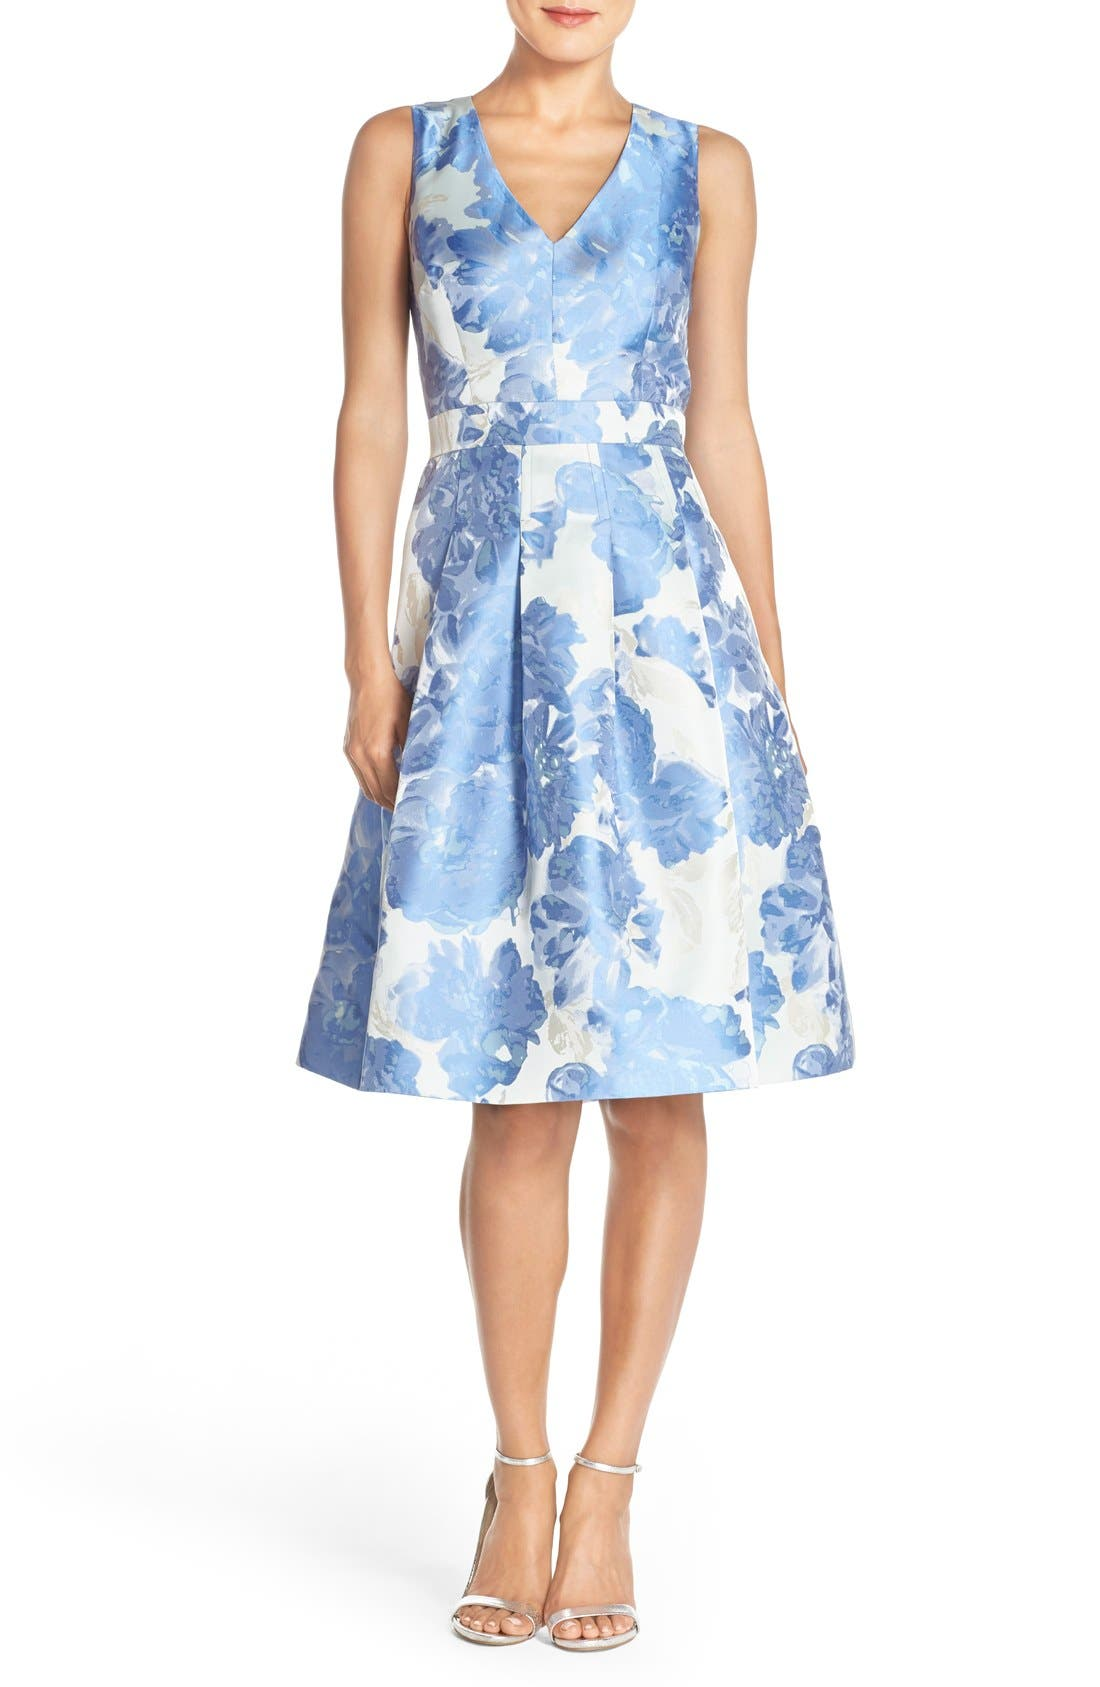 Alternate Image 1 Selected - Eliza J Floral Jacquard Fit & Flare Dress